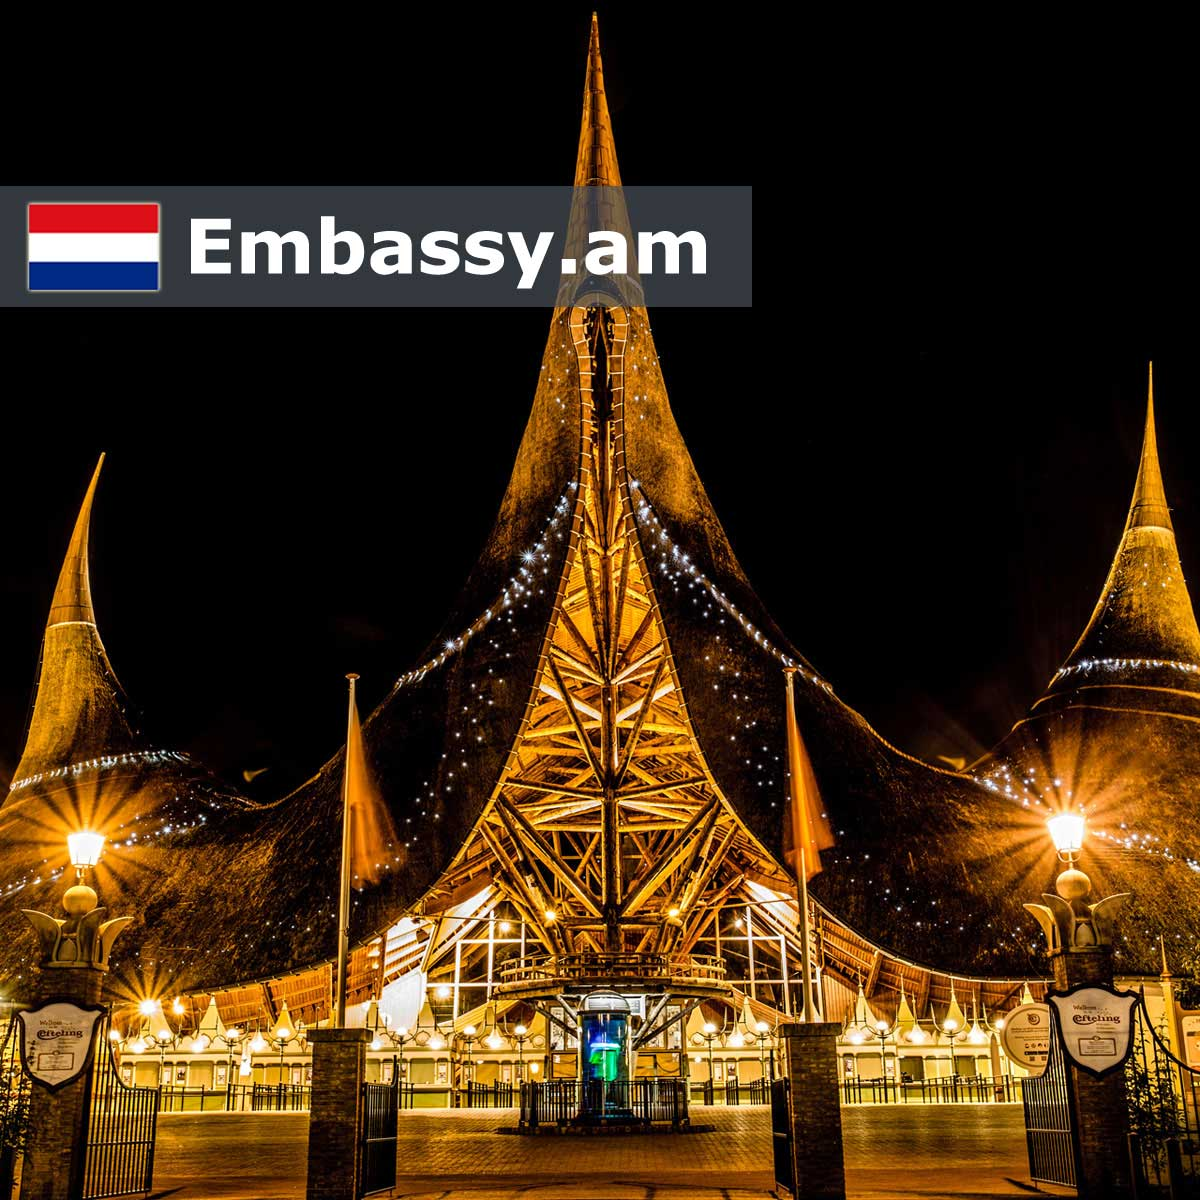 Efteling - Hotels in the Netherlands - Embassy.am